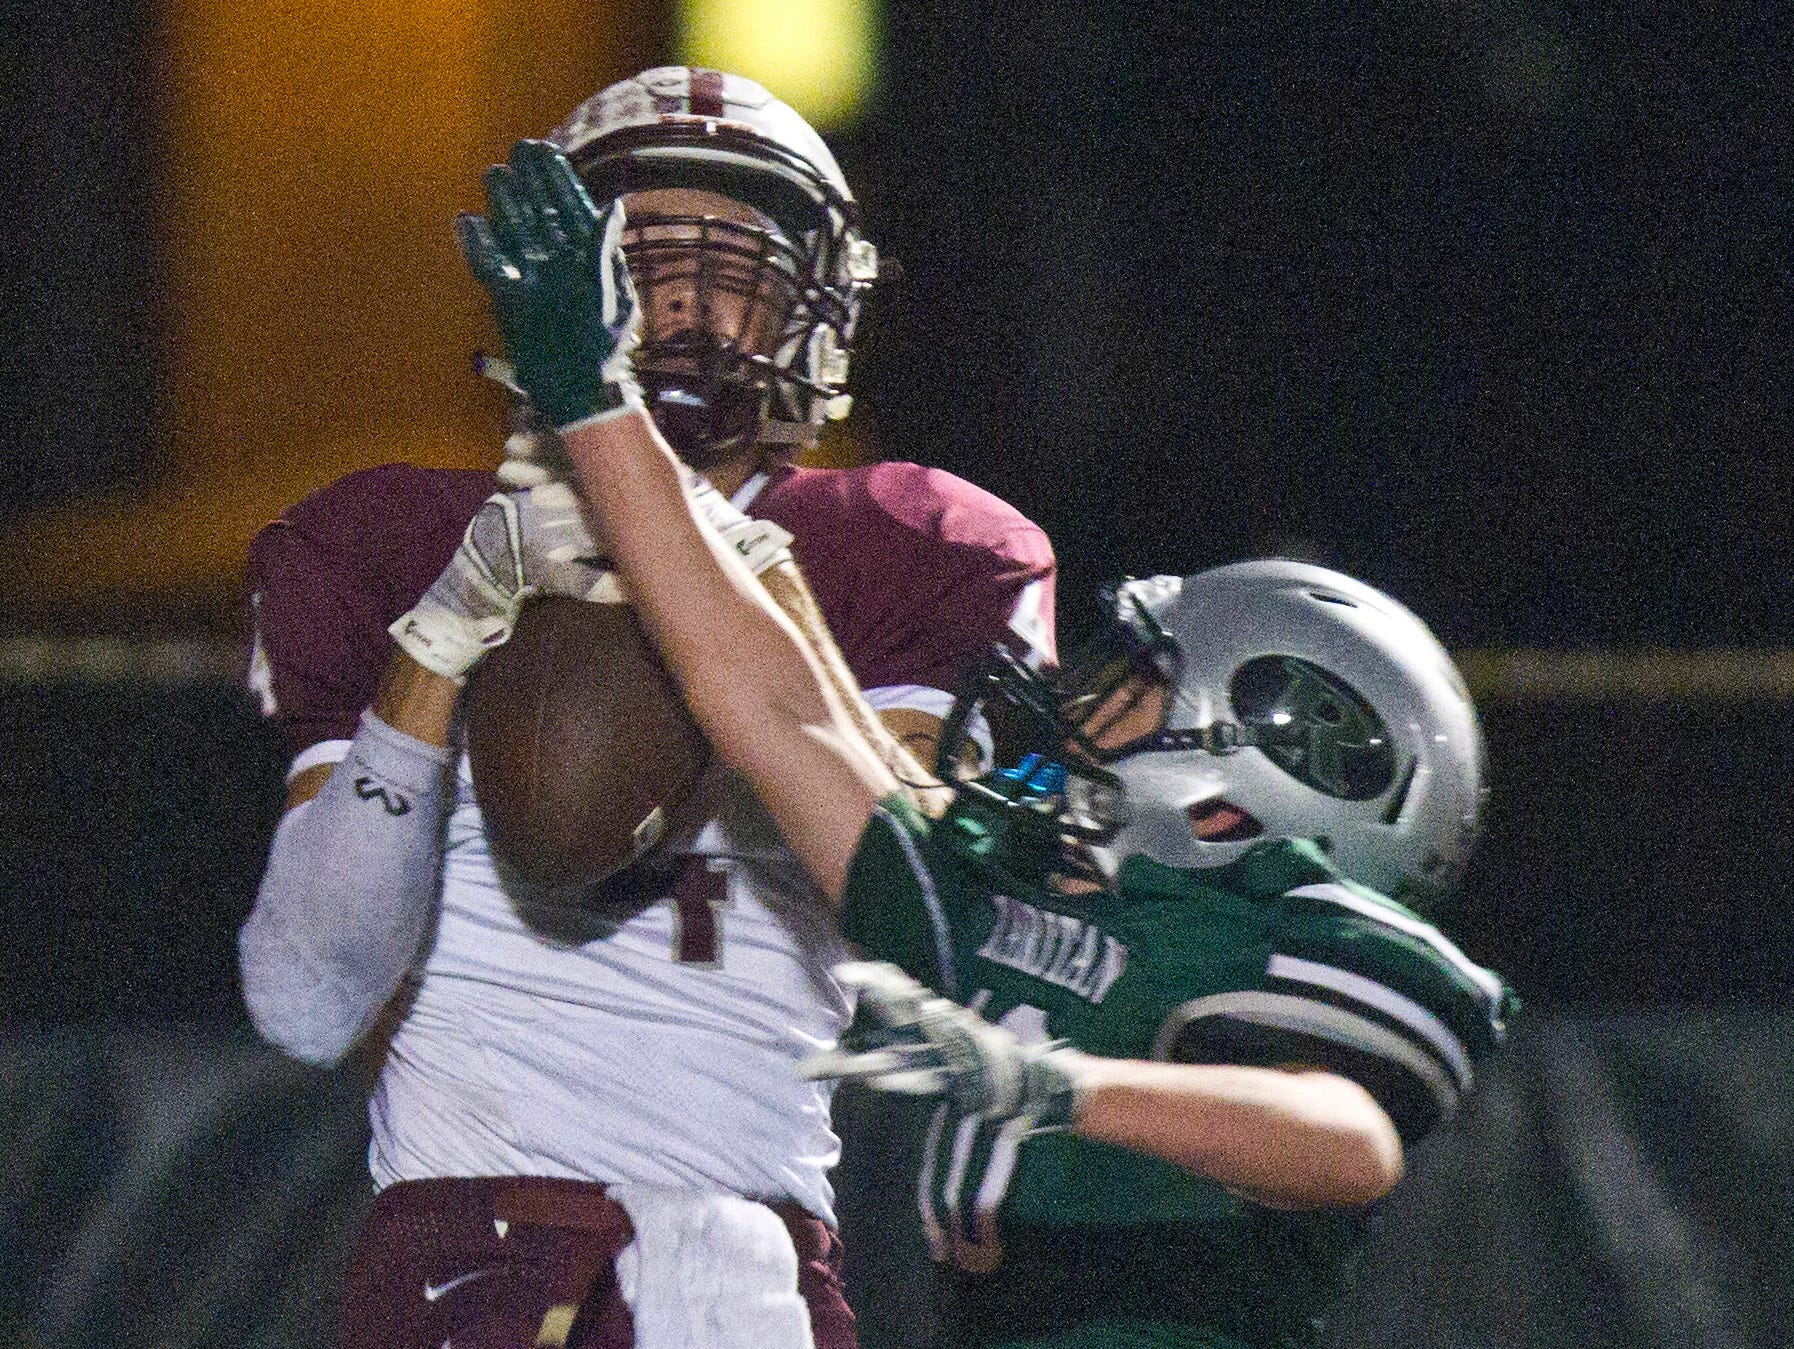 Red Bank Regional's Matt Reardon catches a touchdown pass with Raritan's Rory Sullivan's attempt to block the pass during the football game at Raritan High School in Hazlet, NJ Friday October 9, 2015.